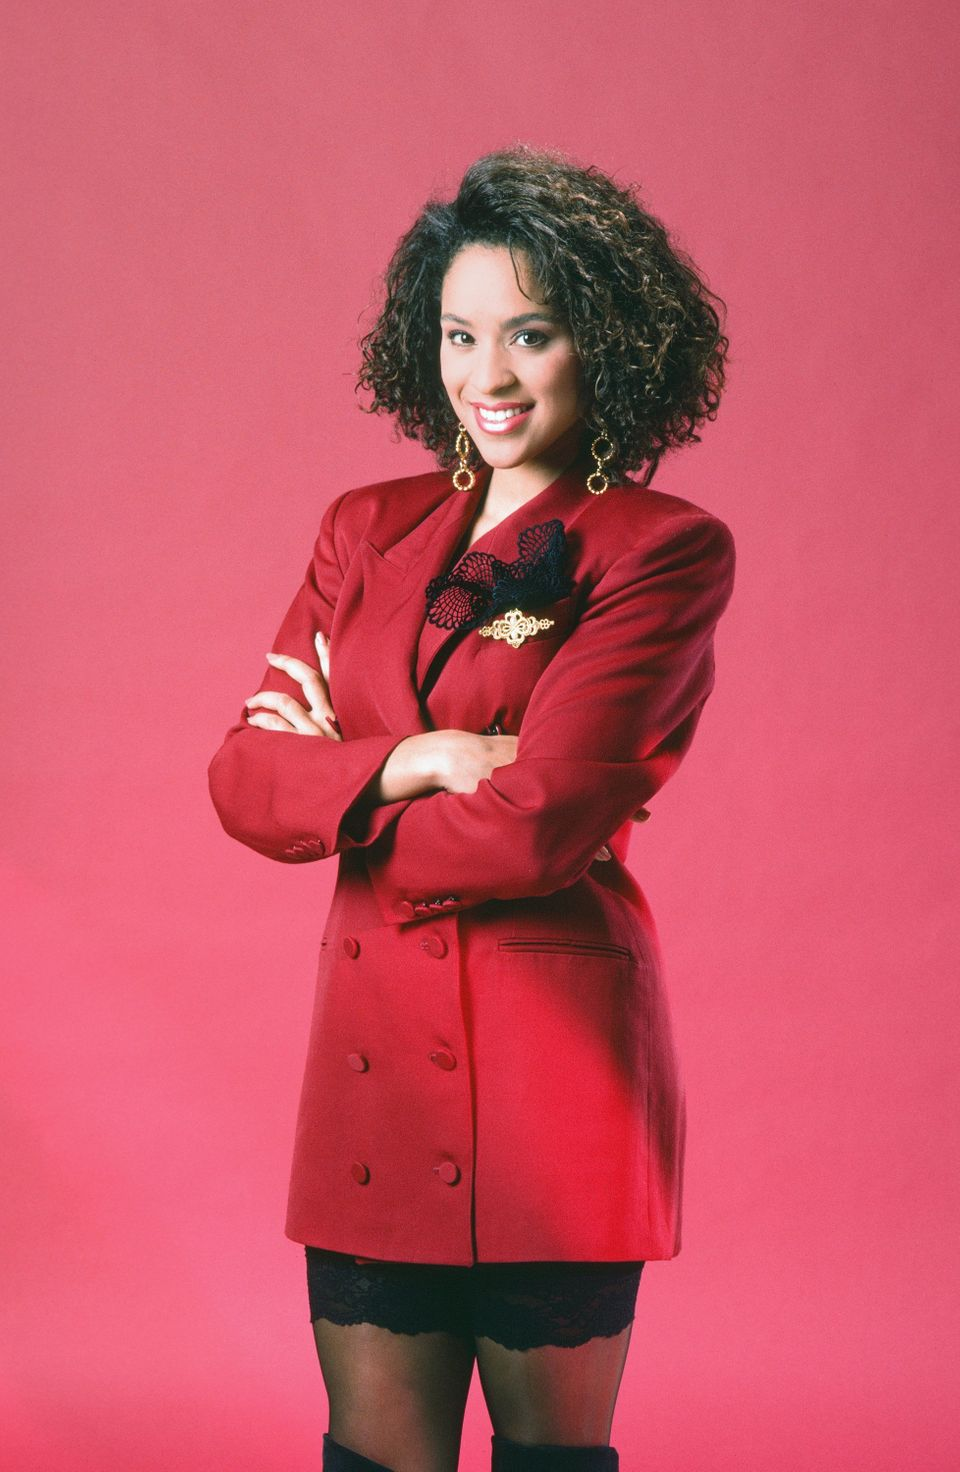 THE FRESH PRINCE OF BEL-AIR -- Season 1 -- Pictured: Karyn Parsons as Hilary Banks -- (Photo by: Gary Null/NBCU Photo Bank vi